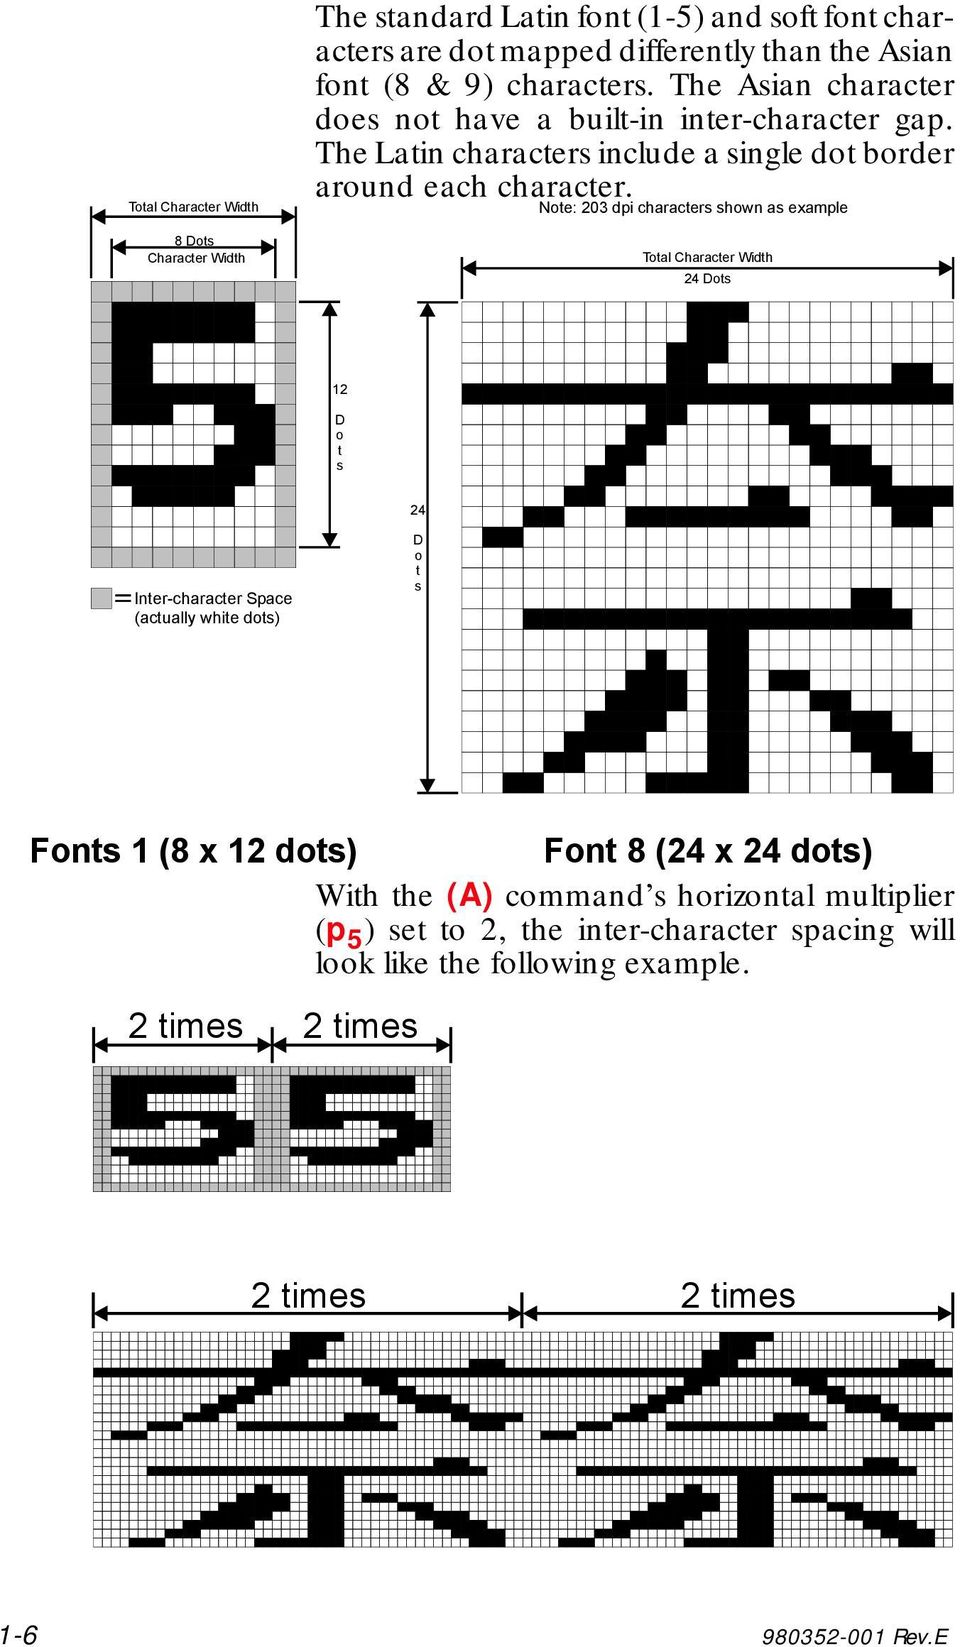 Note: 203 dpi characters shown as example Total Character Width 24 Dots 12 D o t s 24 Inter-character Space (actually white dots) D o t s Fonts 1 (8 x 12 dots) Font 8 (24 x